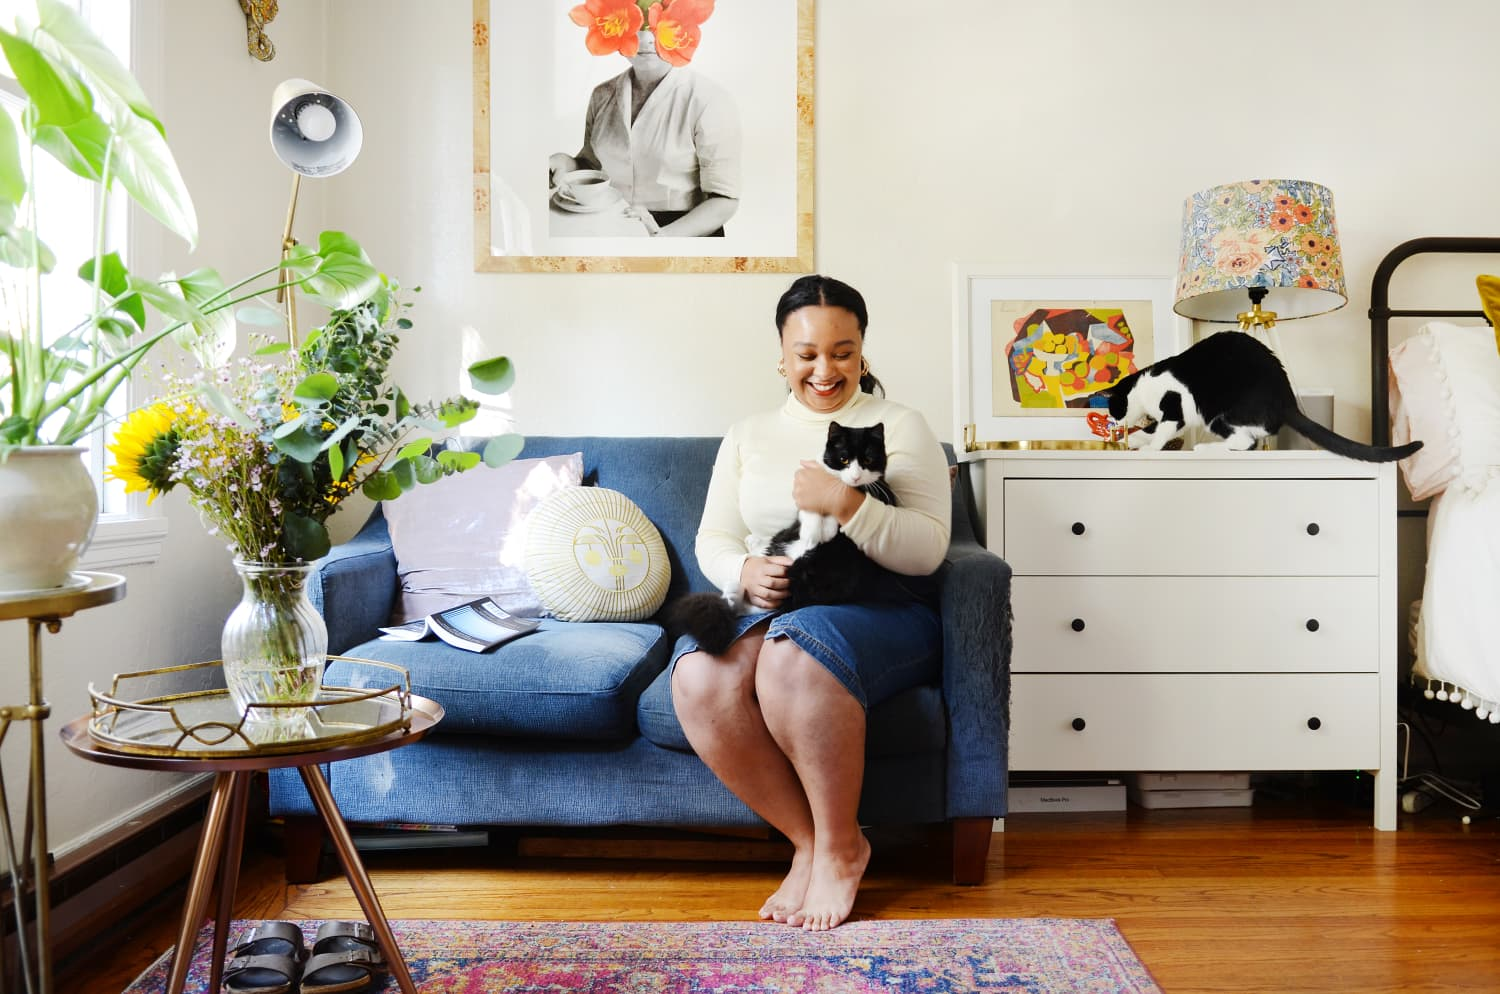 The 8 Best Organizing Ideas We Learned from Studio Apartments